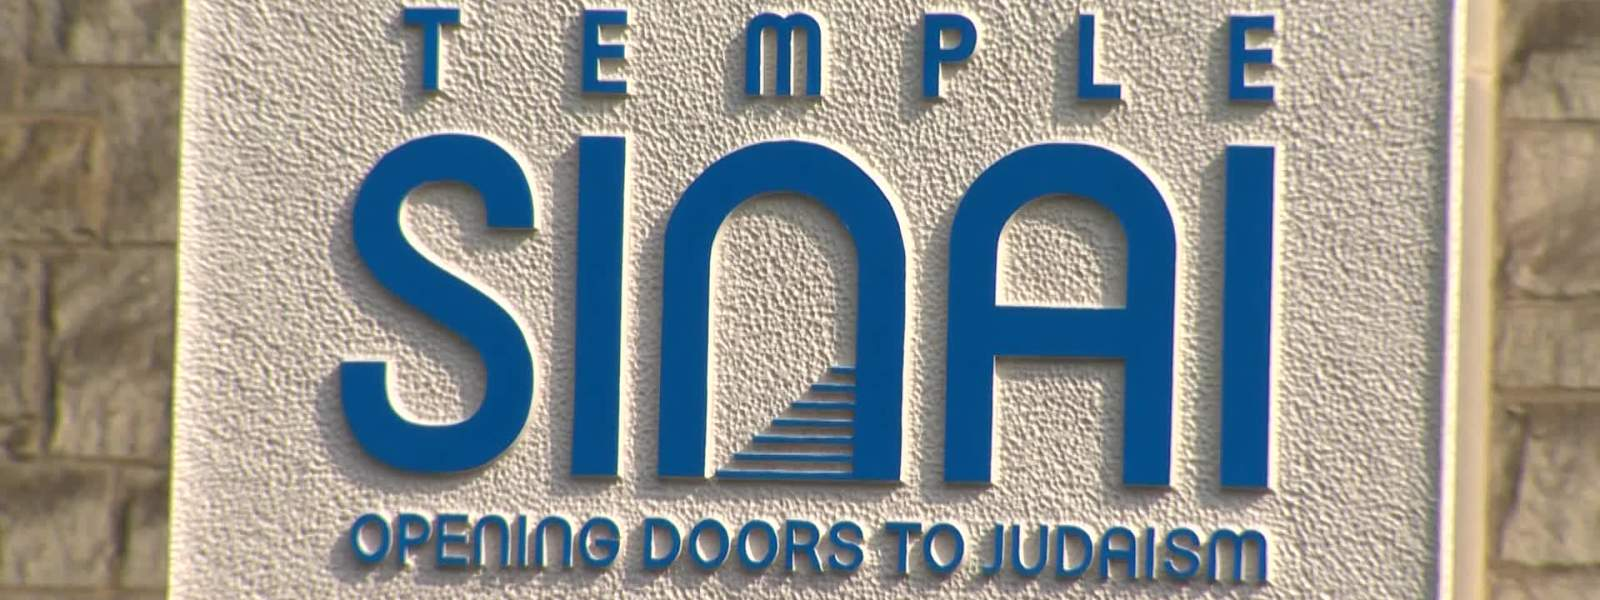 Temple Sinai sign